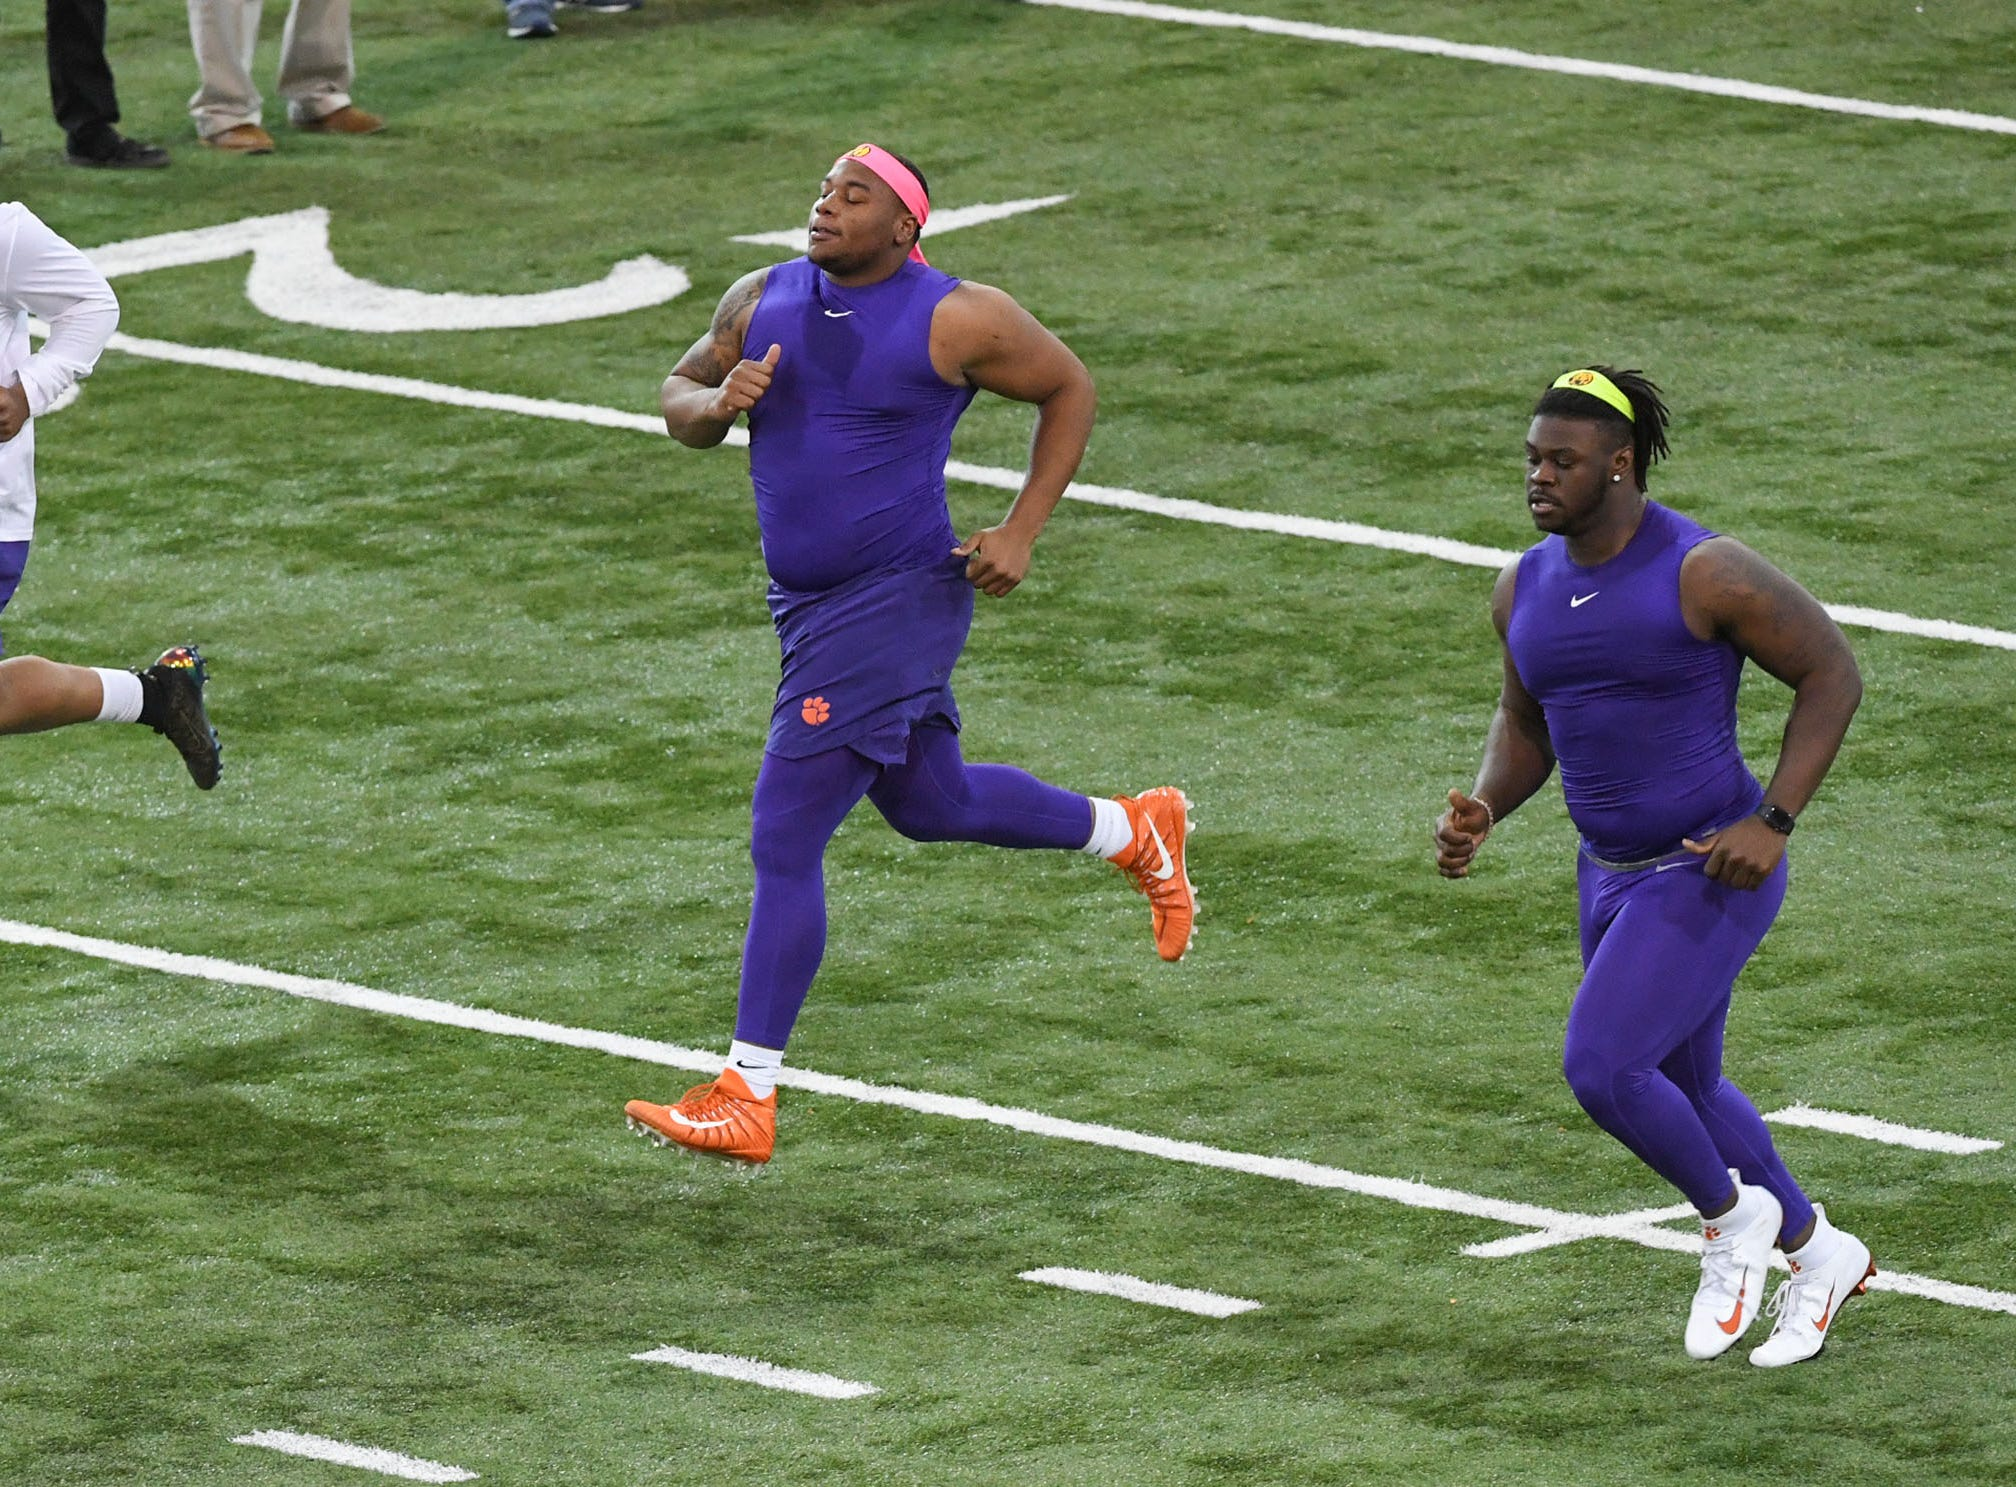 Defensive lineman Christian Wilkins, left, Dexter Lawrence, and Albert Huggins Jr. run for NFL scouts during Clemson Pro Day at the Poe Indoor Facility in Clemson, S.C. Thursday, March 14, 2019.